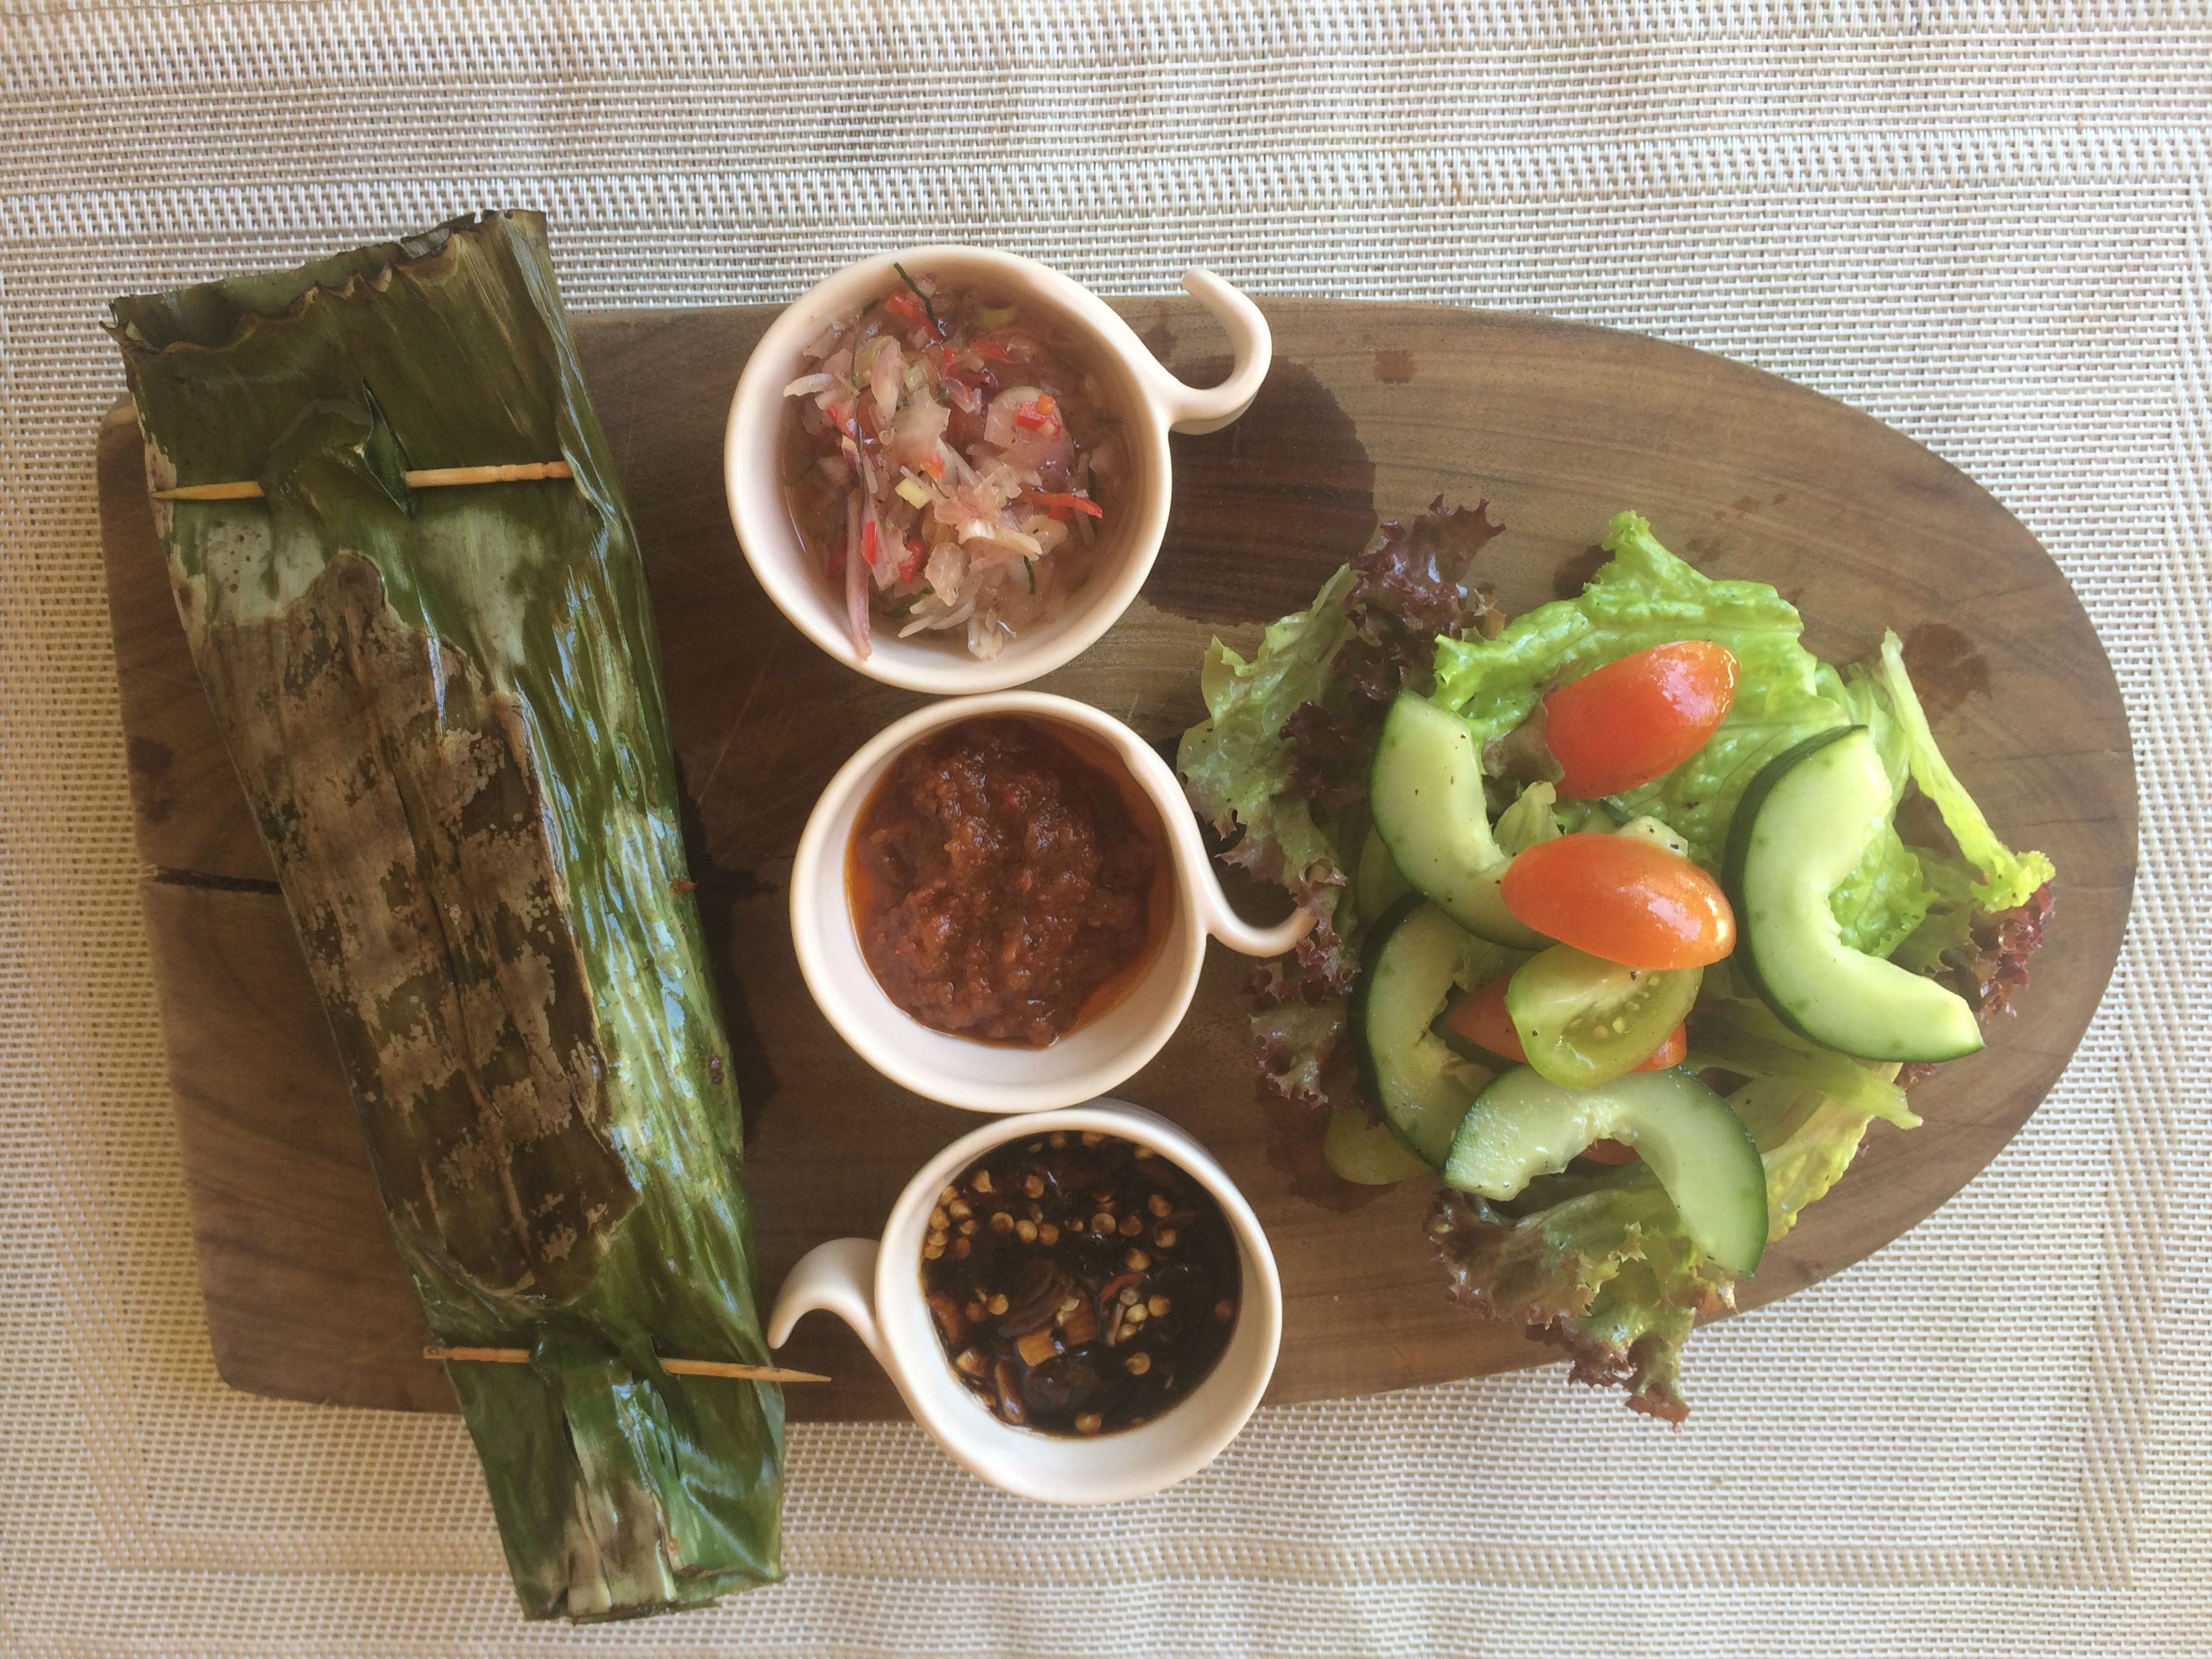 Ikan Pepes (popular Balinese dish) Staffed fish cooked in banana leaves slowly